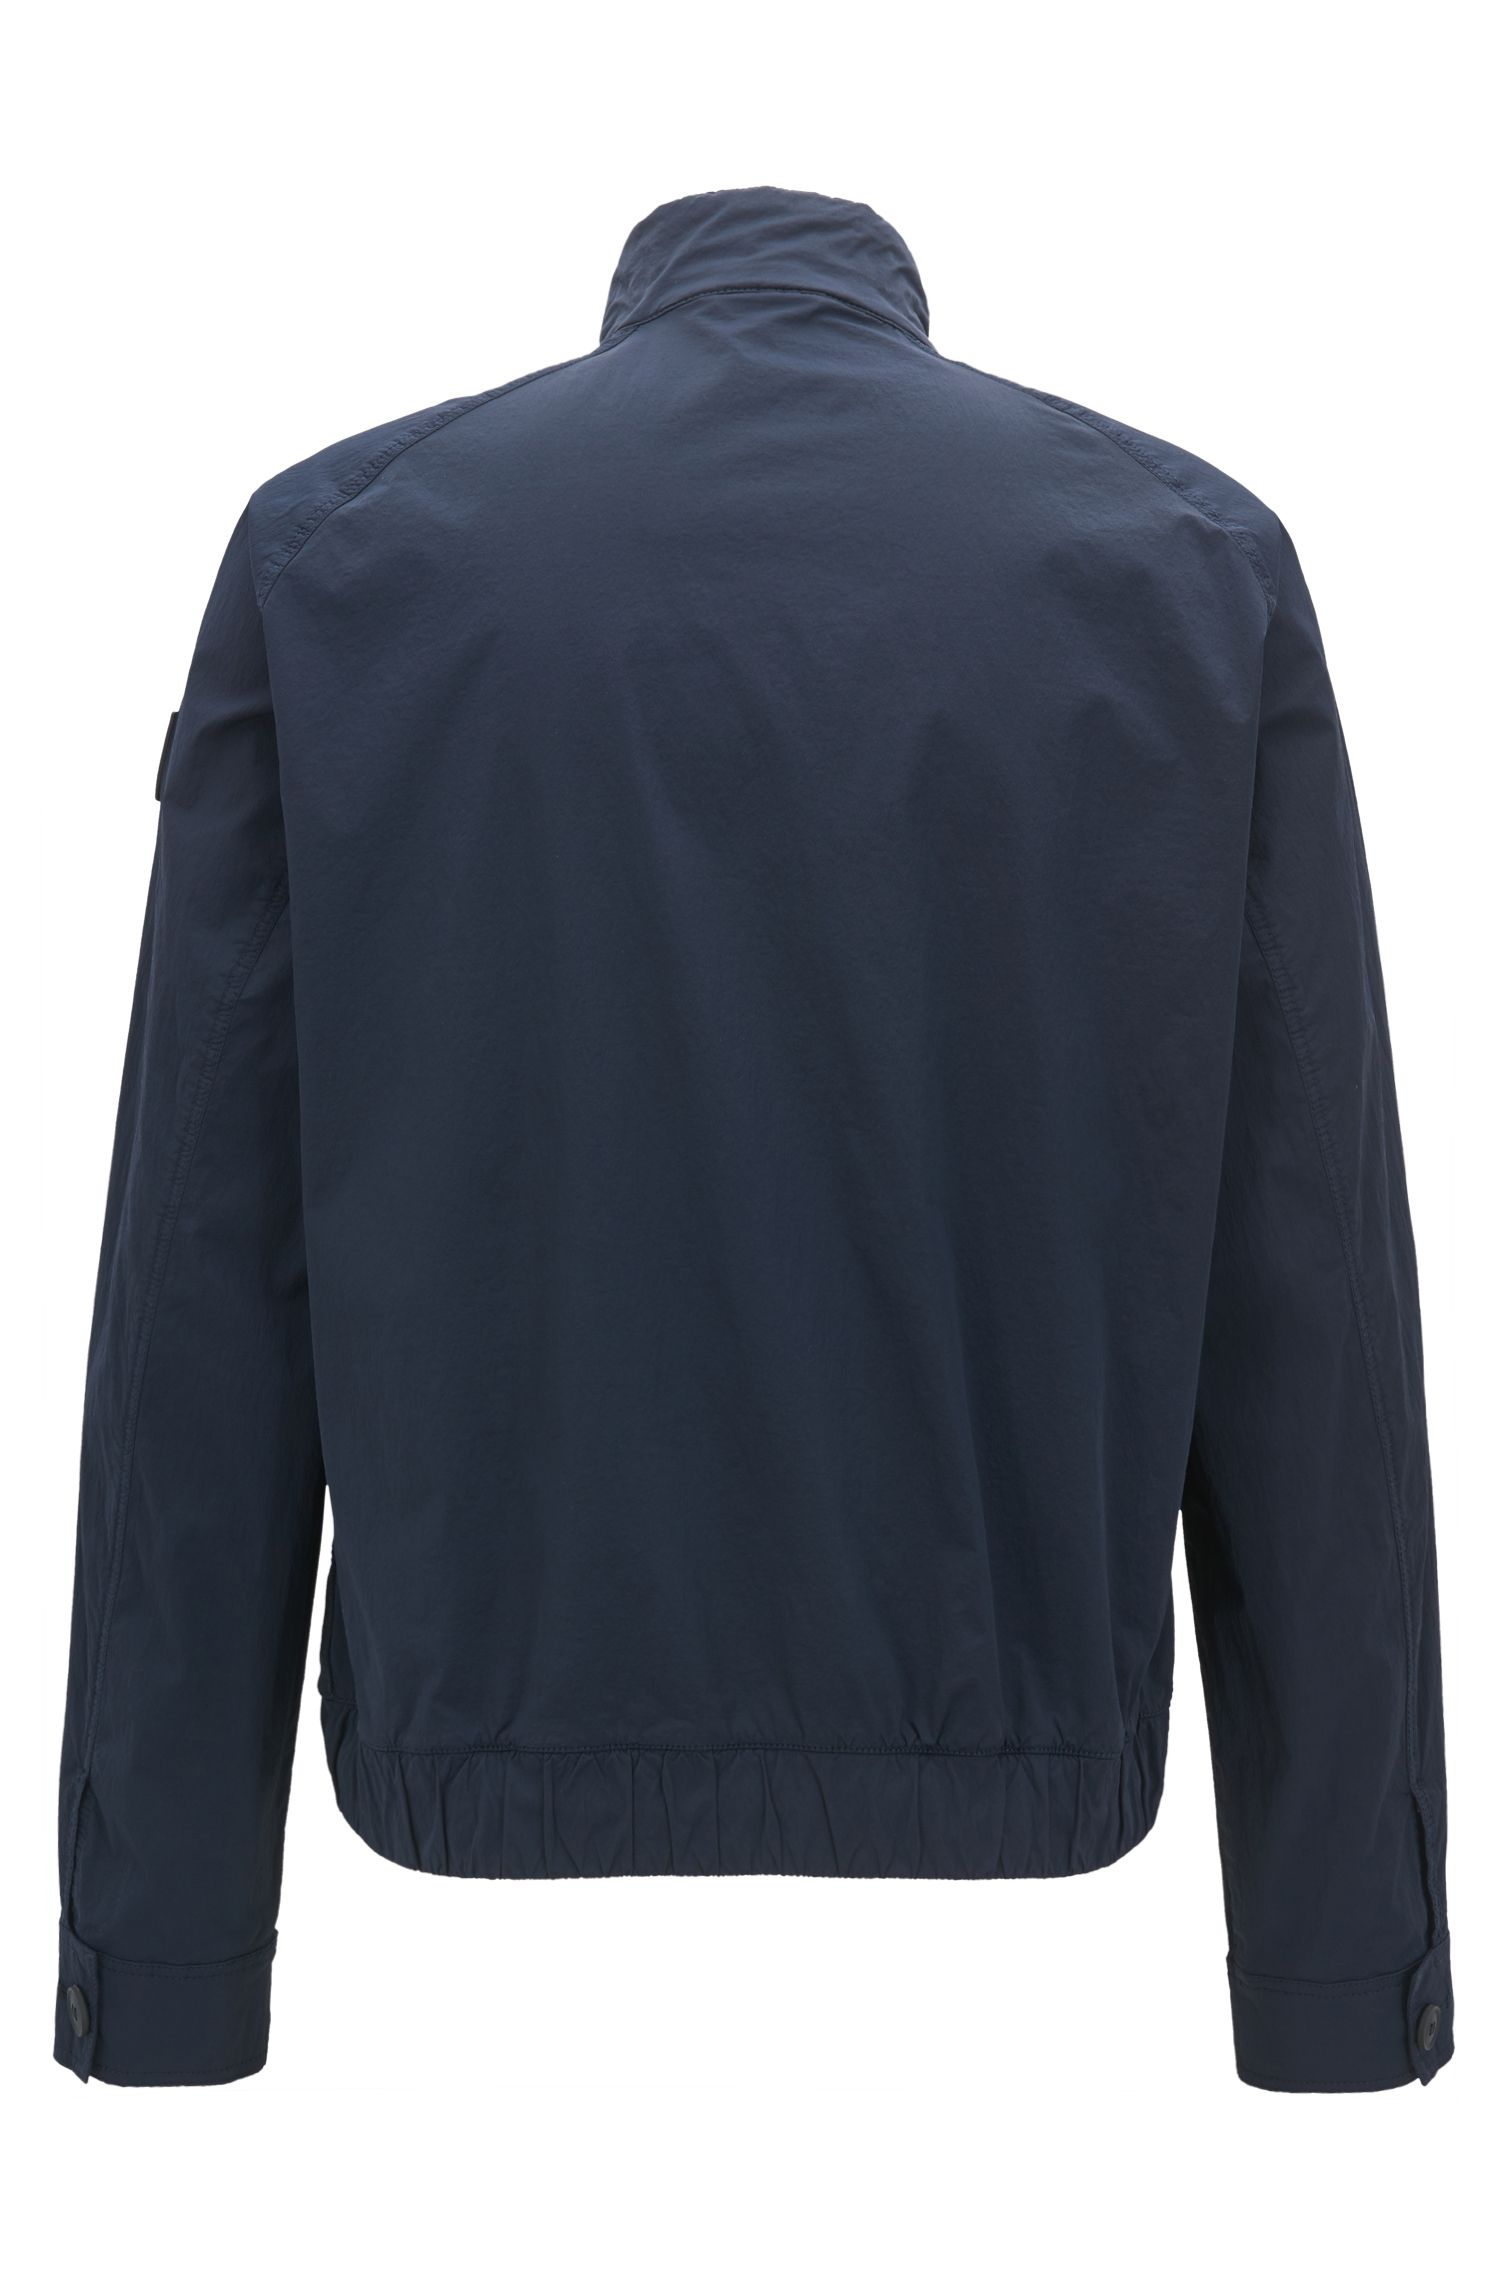 Lightweight jacket in wrinkle-effect stretch fabric